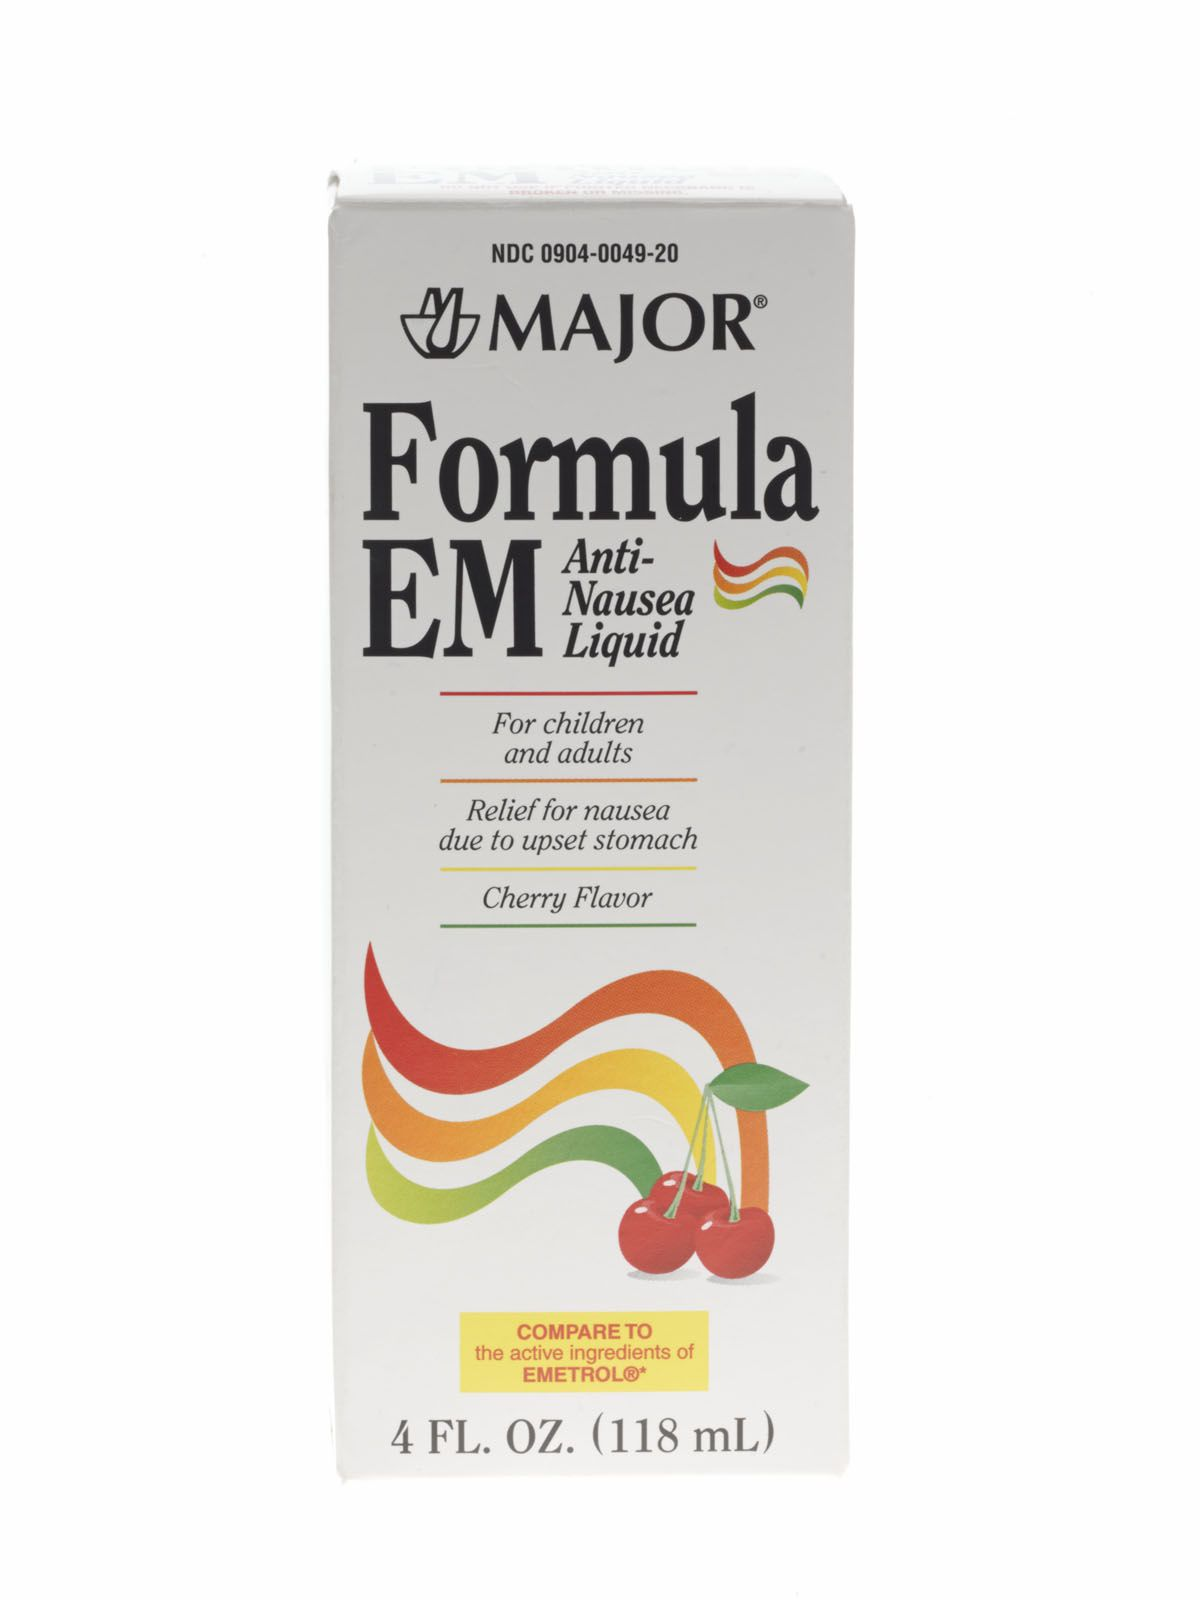 Generic OTC Formula EM Liquid Nutritional Formula - Emetrol Liq Cherry 118Ml Bt, Each - Model 700798